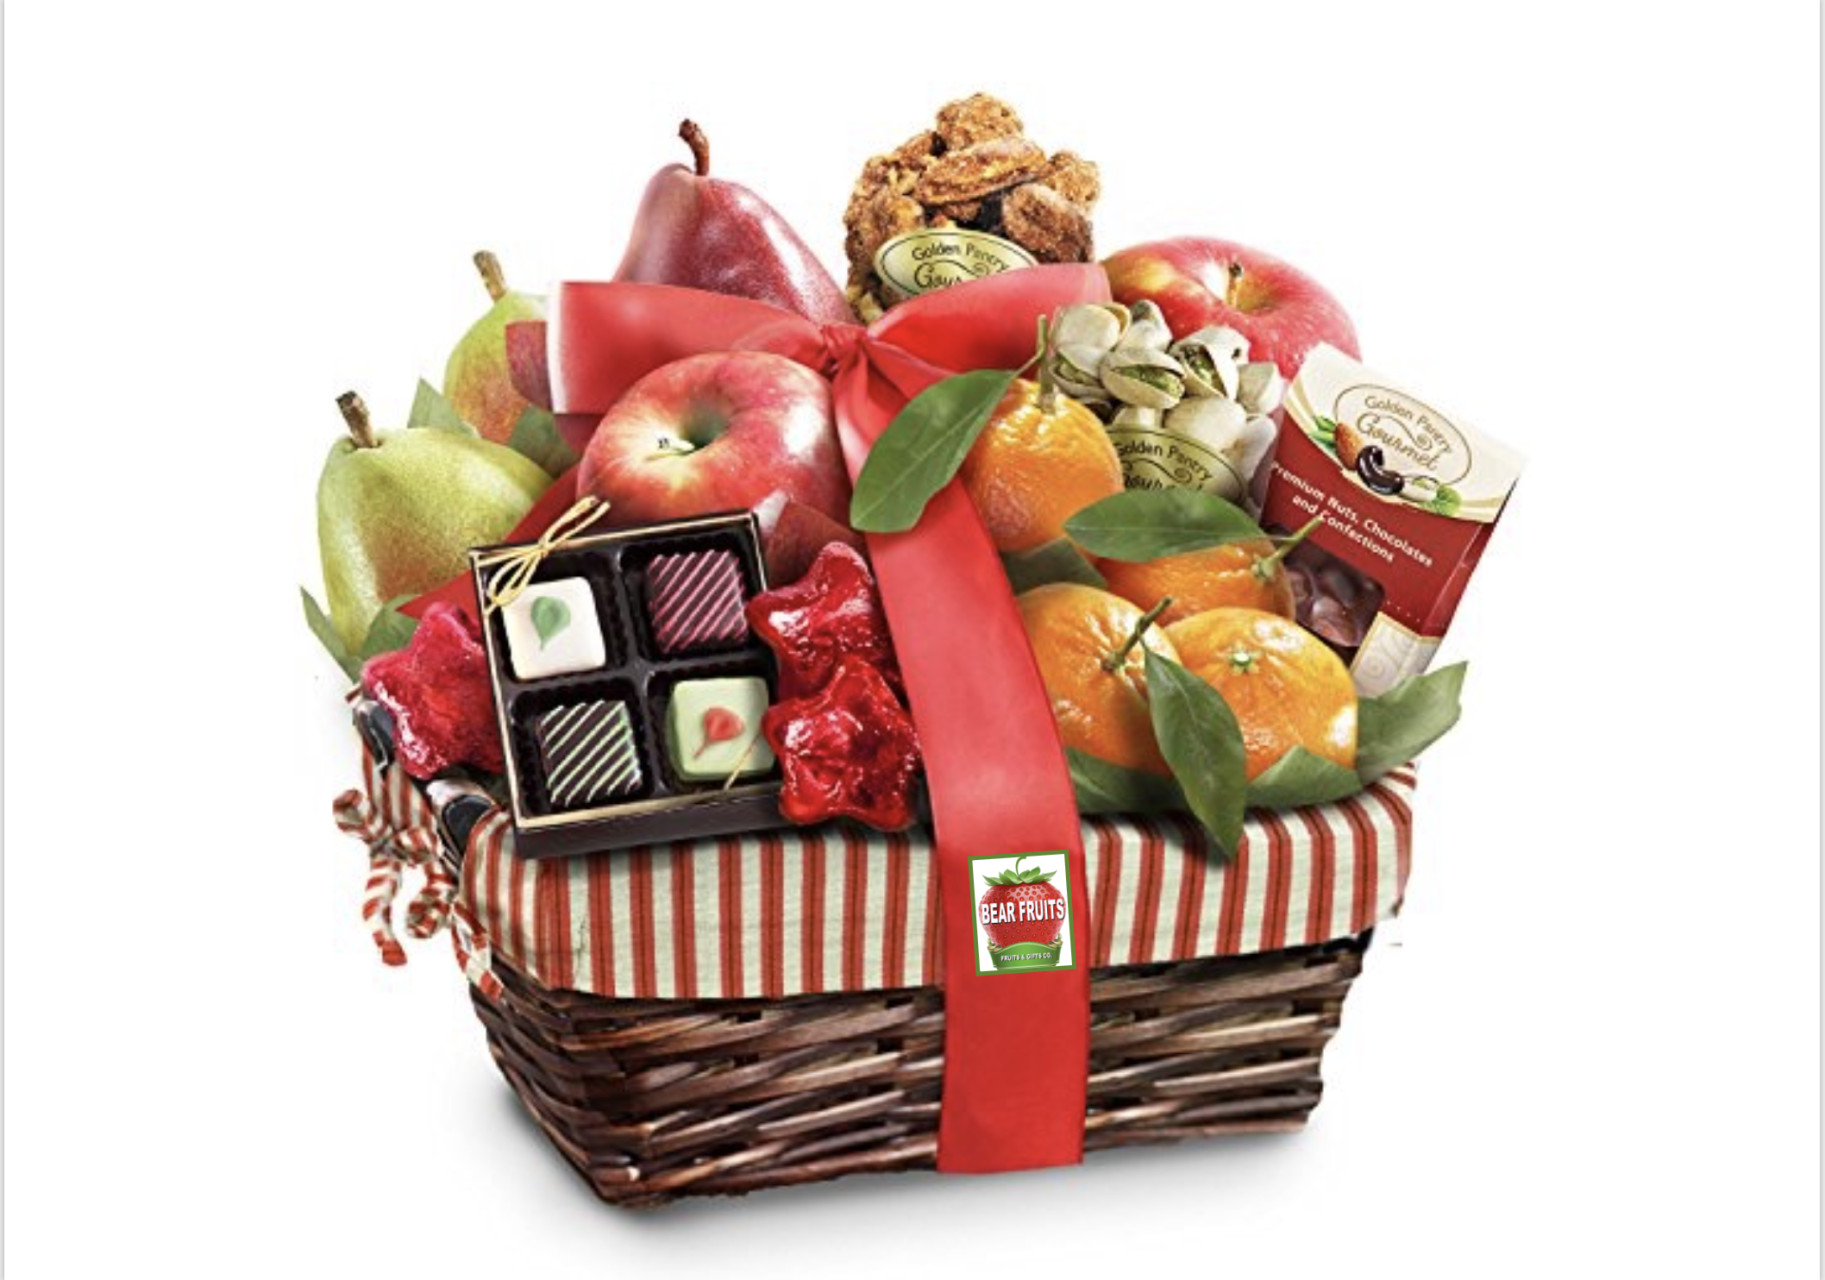 MEDIUM BASKETS WITH FRUITS & NUTS